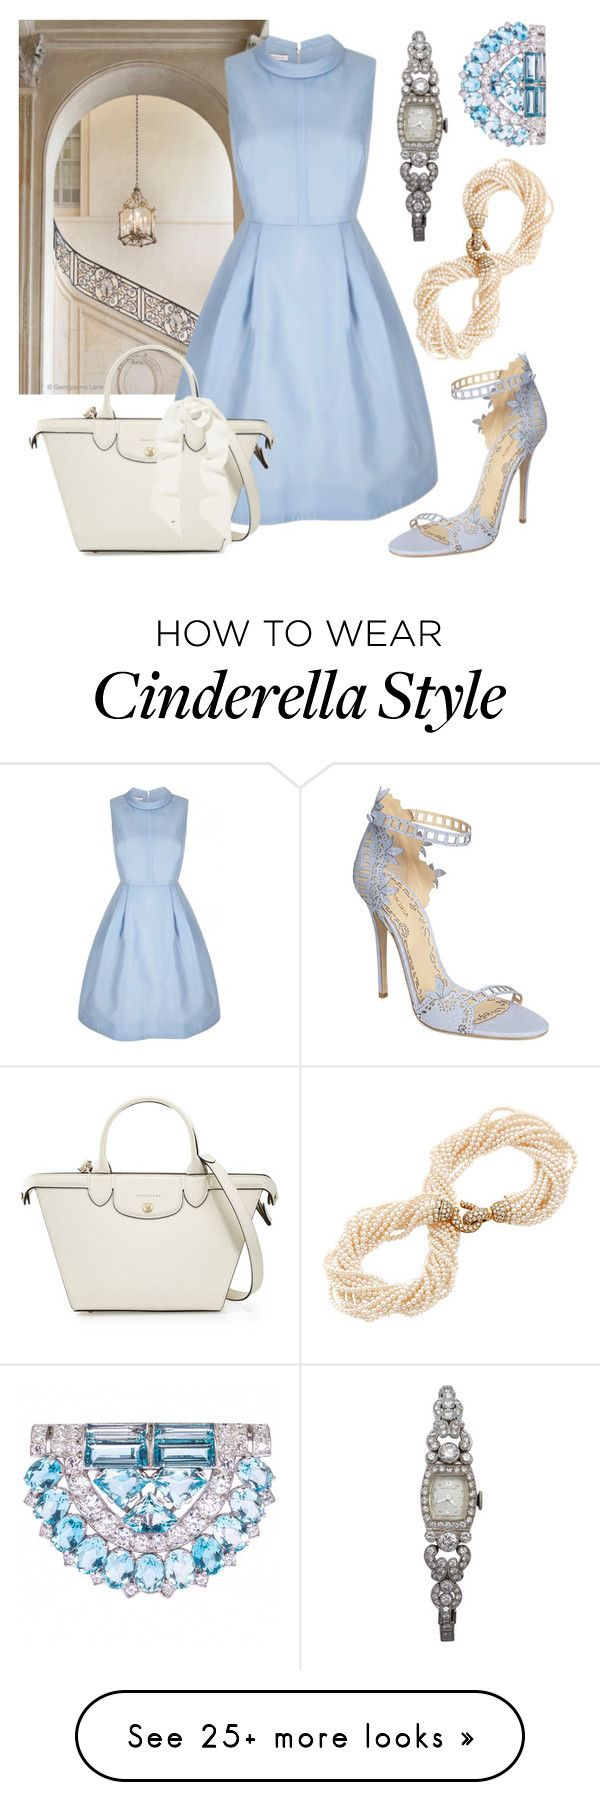 """Pale Blue Pretty"" by aliciahgibson on Polyvore featuring Marchesa, Rodin, Longchamp, Yves Saint Laurent, Cartier, Hamilton and vintage"